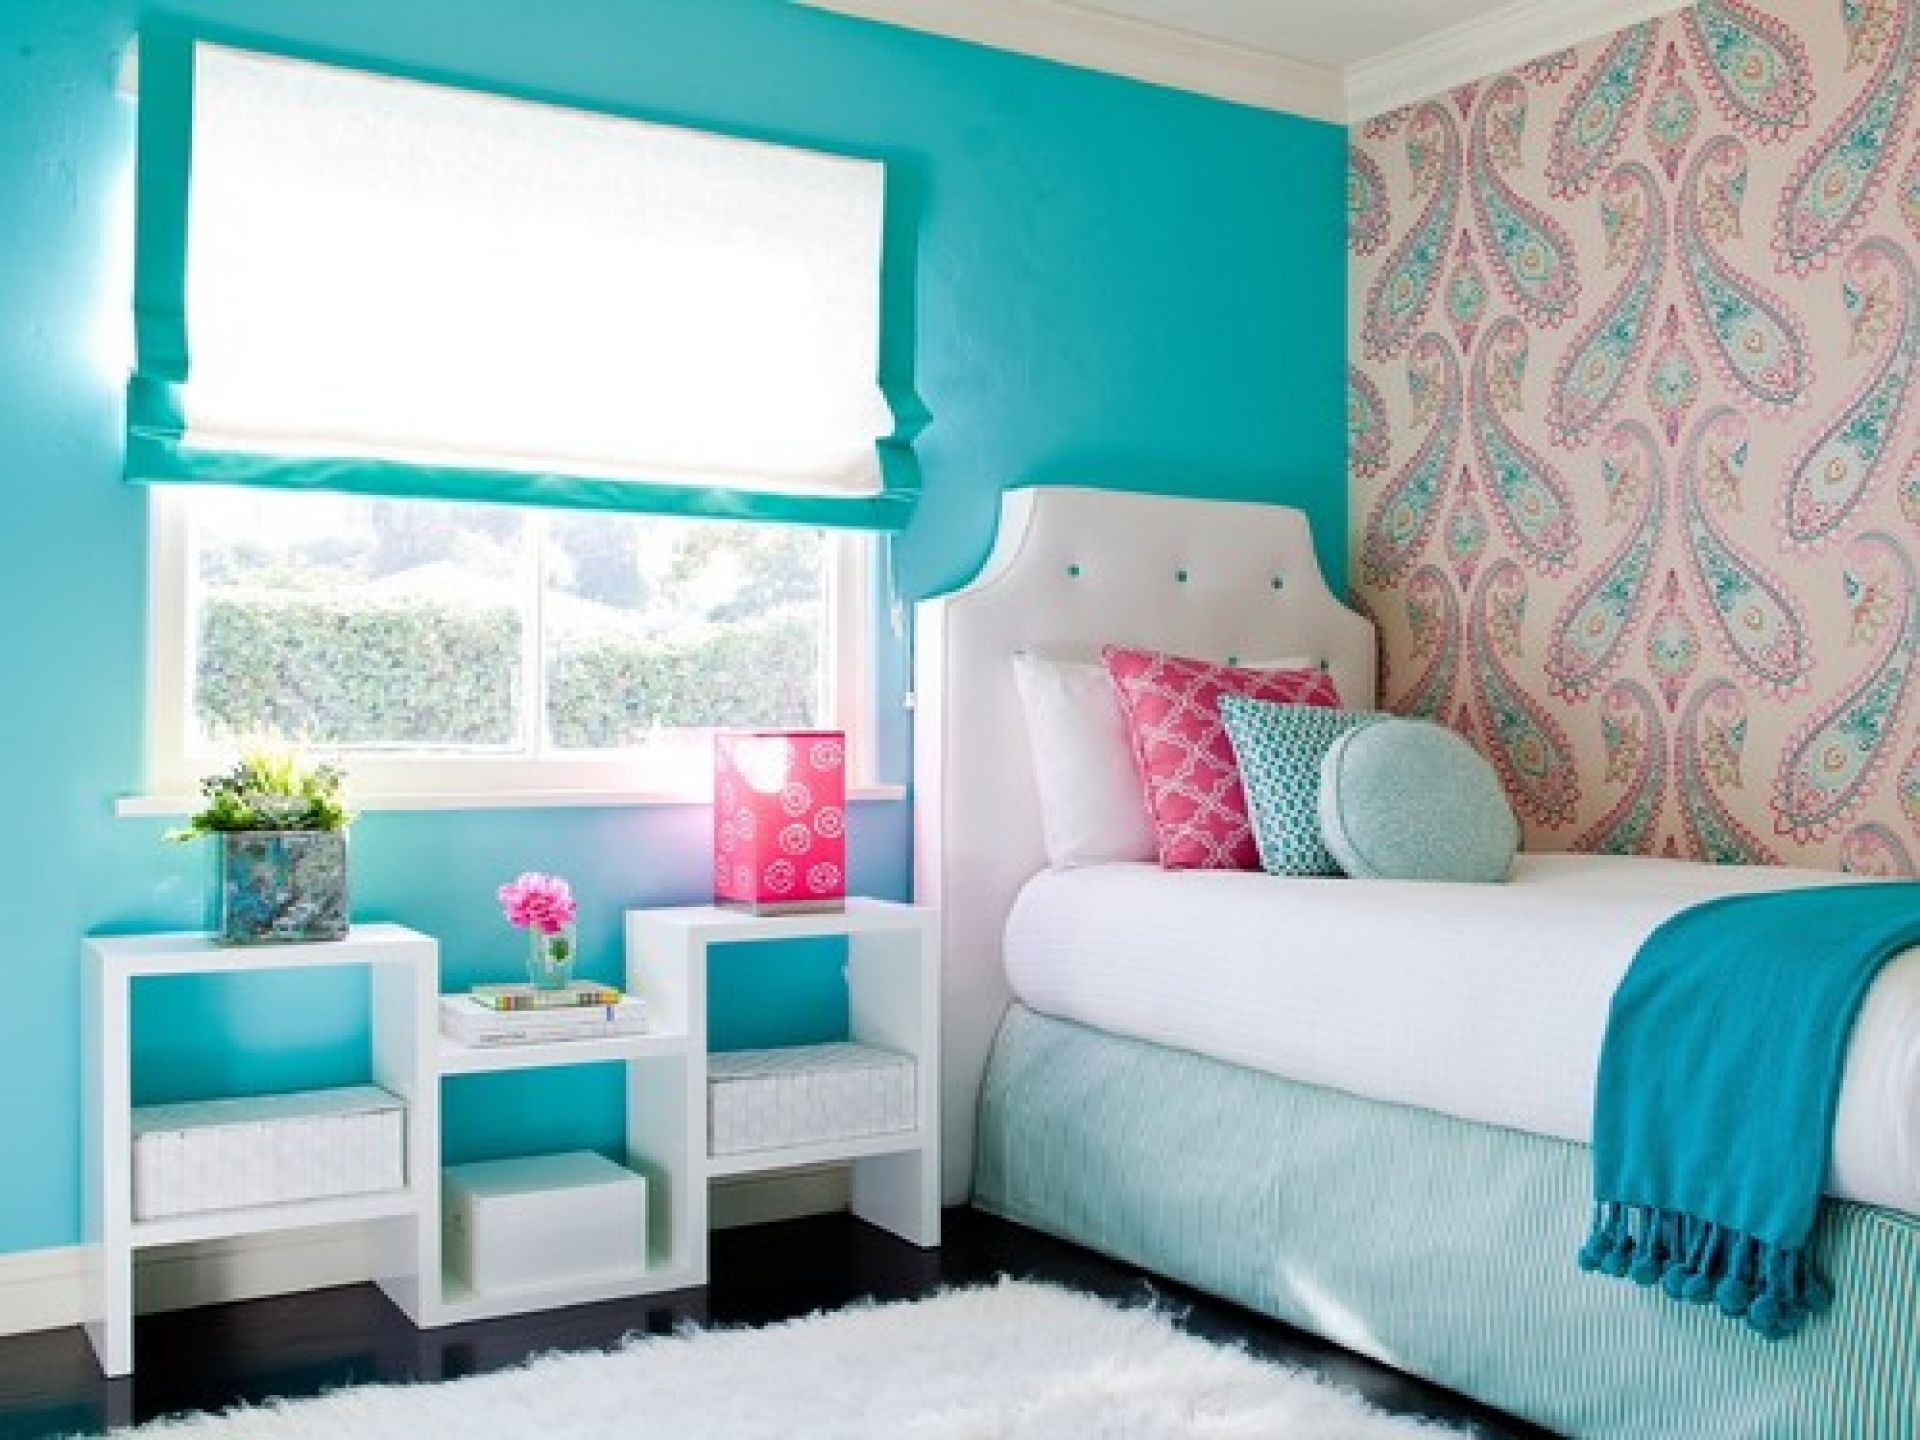 Simple design comfy room colors teenage girl bedroom wall for Bedroom ideas for girls